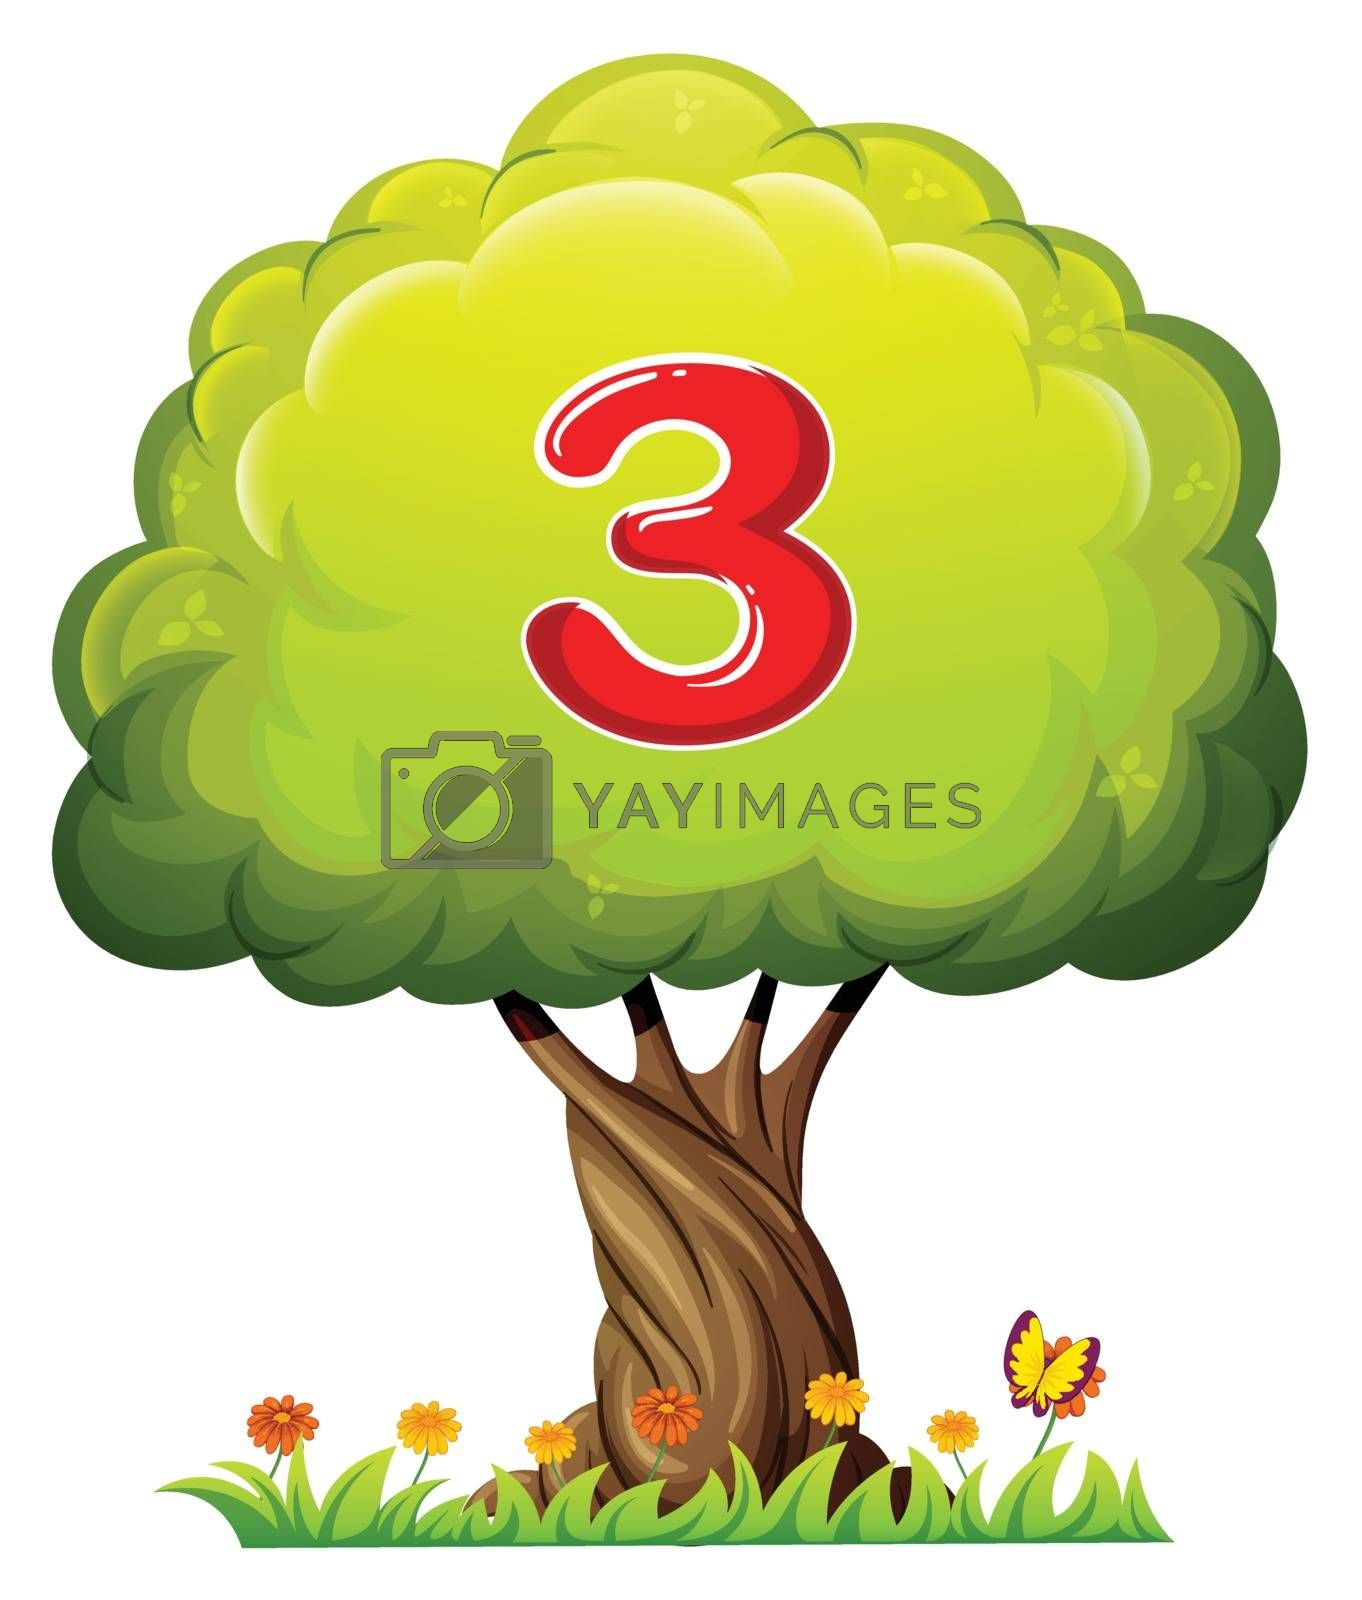 Illustration of a tree with a number three figure on a white background